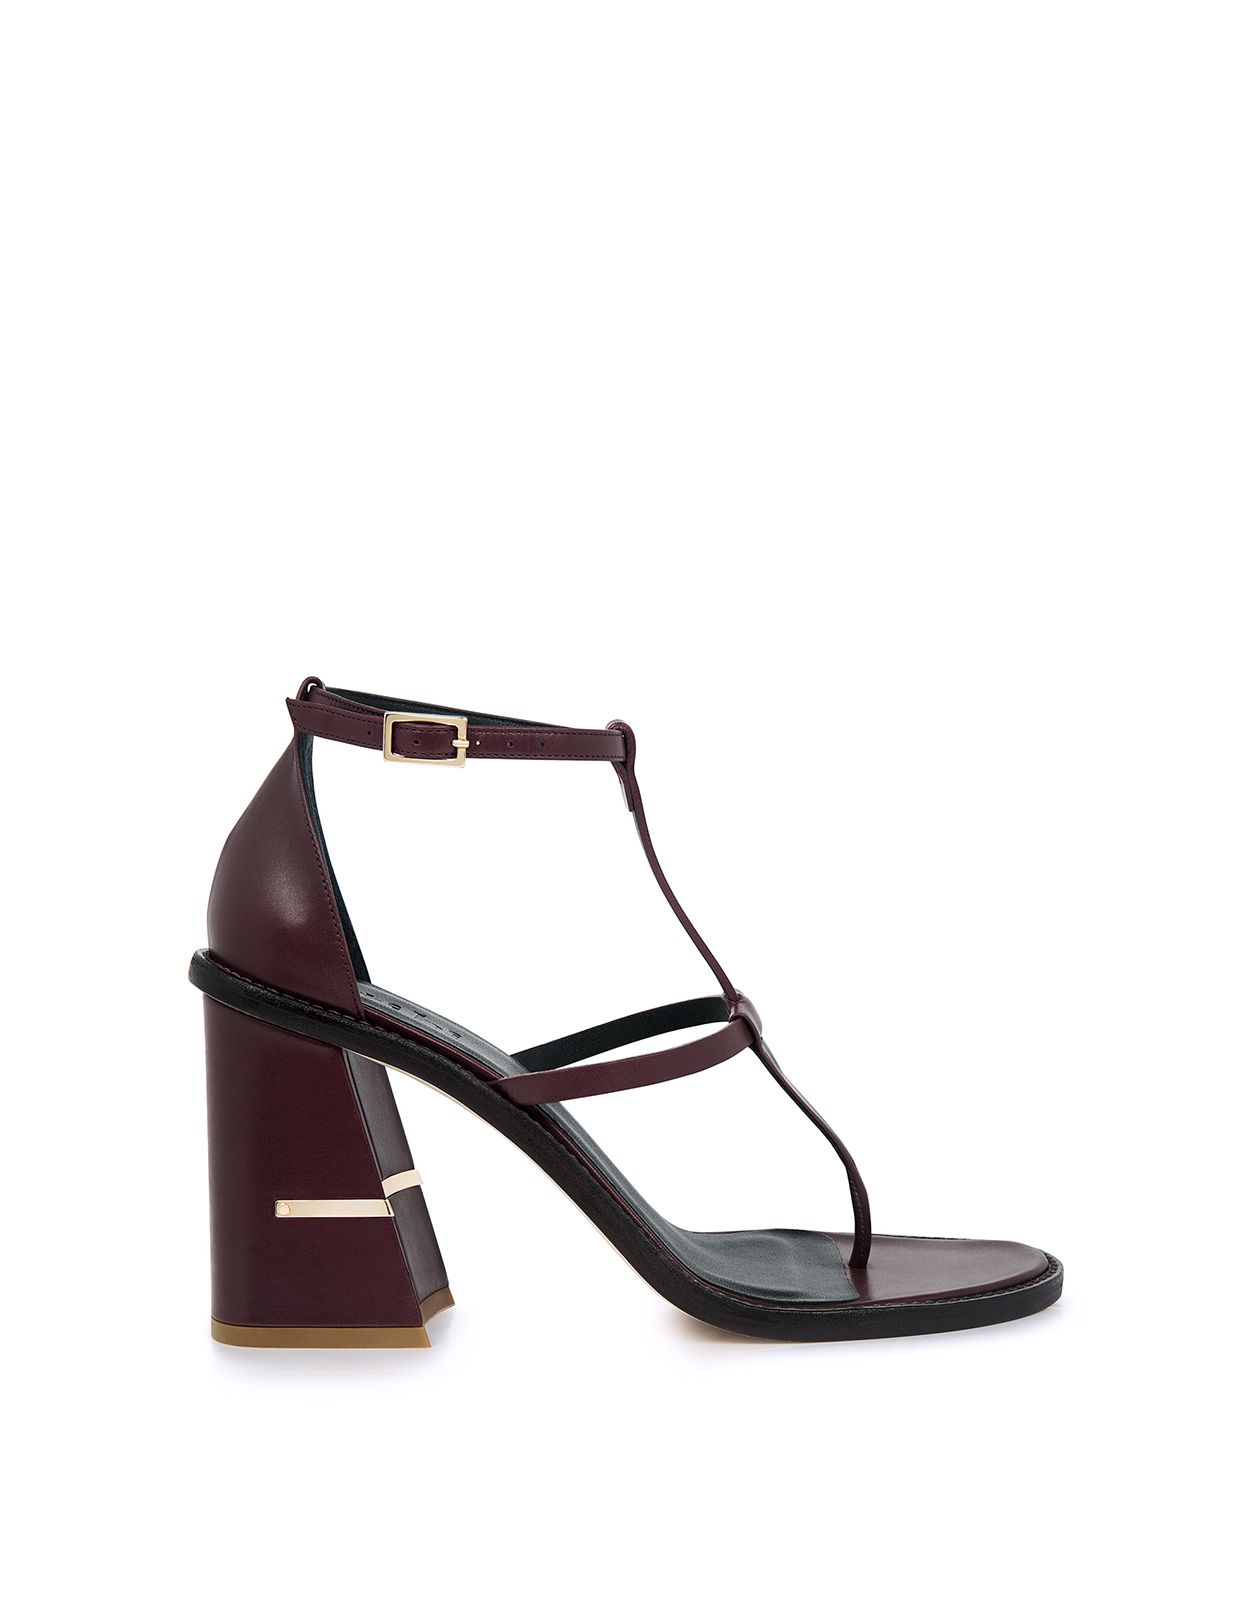 0a48466ebffe The Chloe sandals from Tibi features an updated angular block heel with a  shiny…